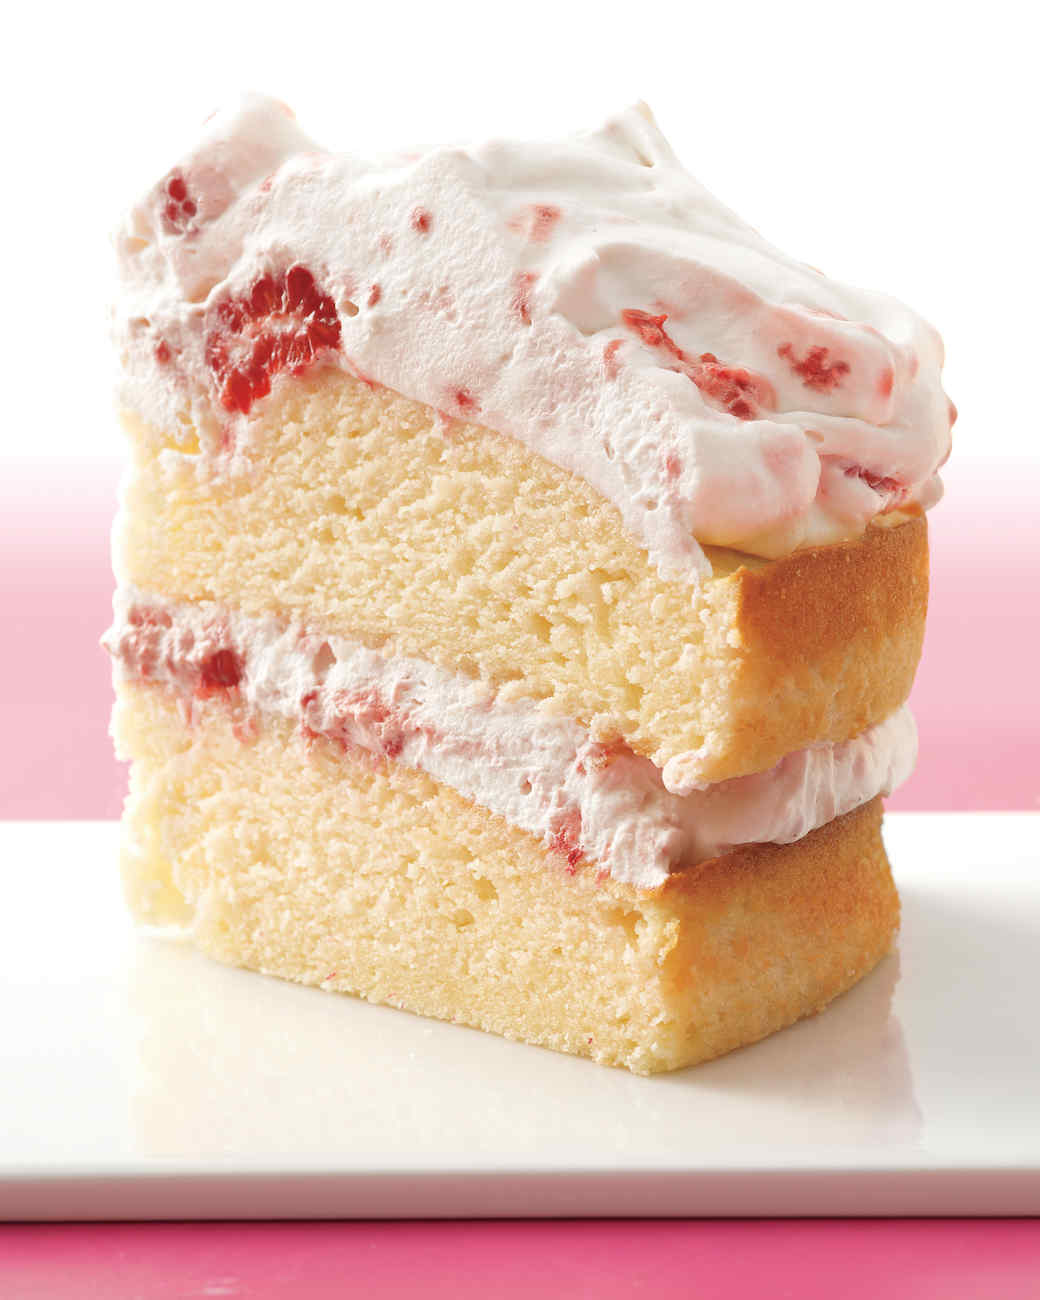 raspberry-cream-layer-cake-med108164.jpg